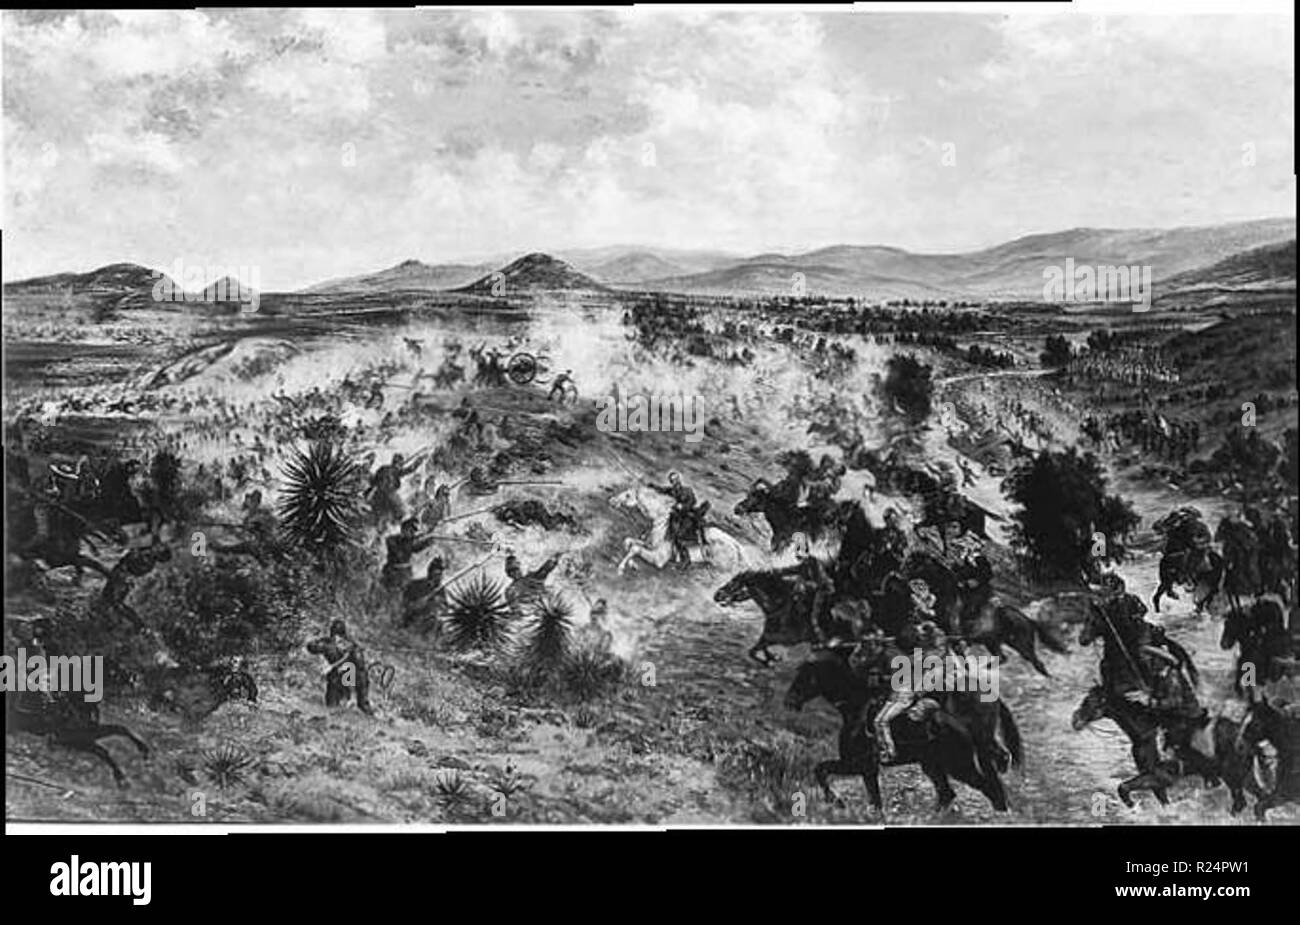 Mexican Imperialists engage Republican forces during the Battle of Miahuatlán in 1866. The battle occurred months after the French announced its withdrawal. - Stock Image